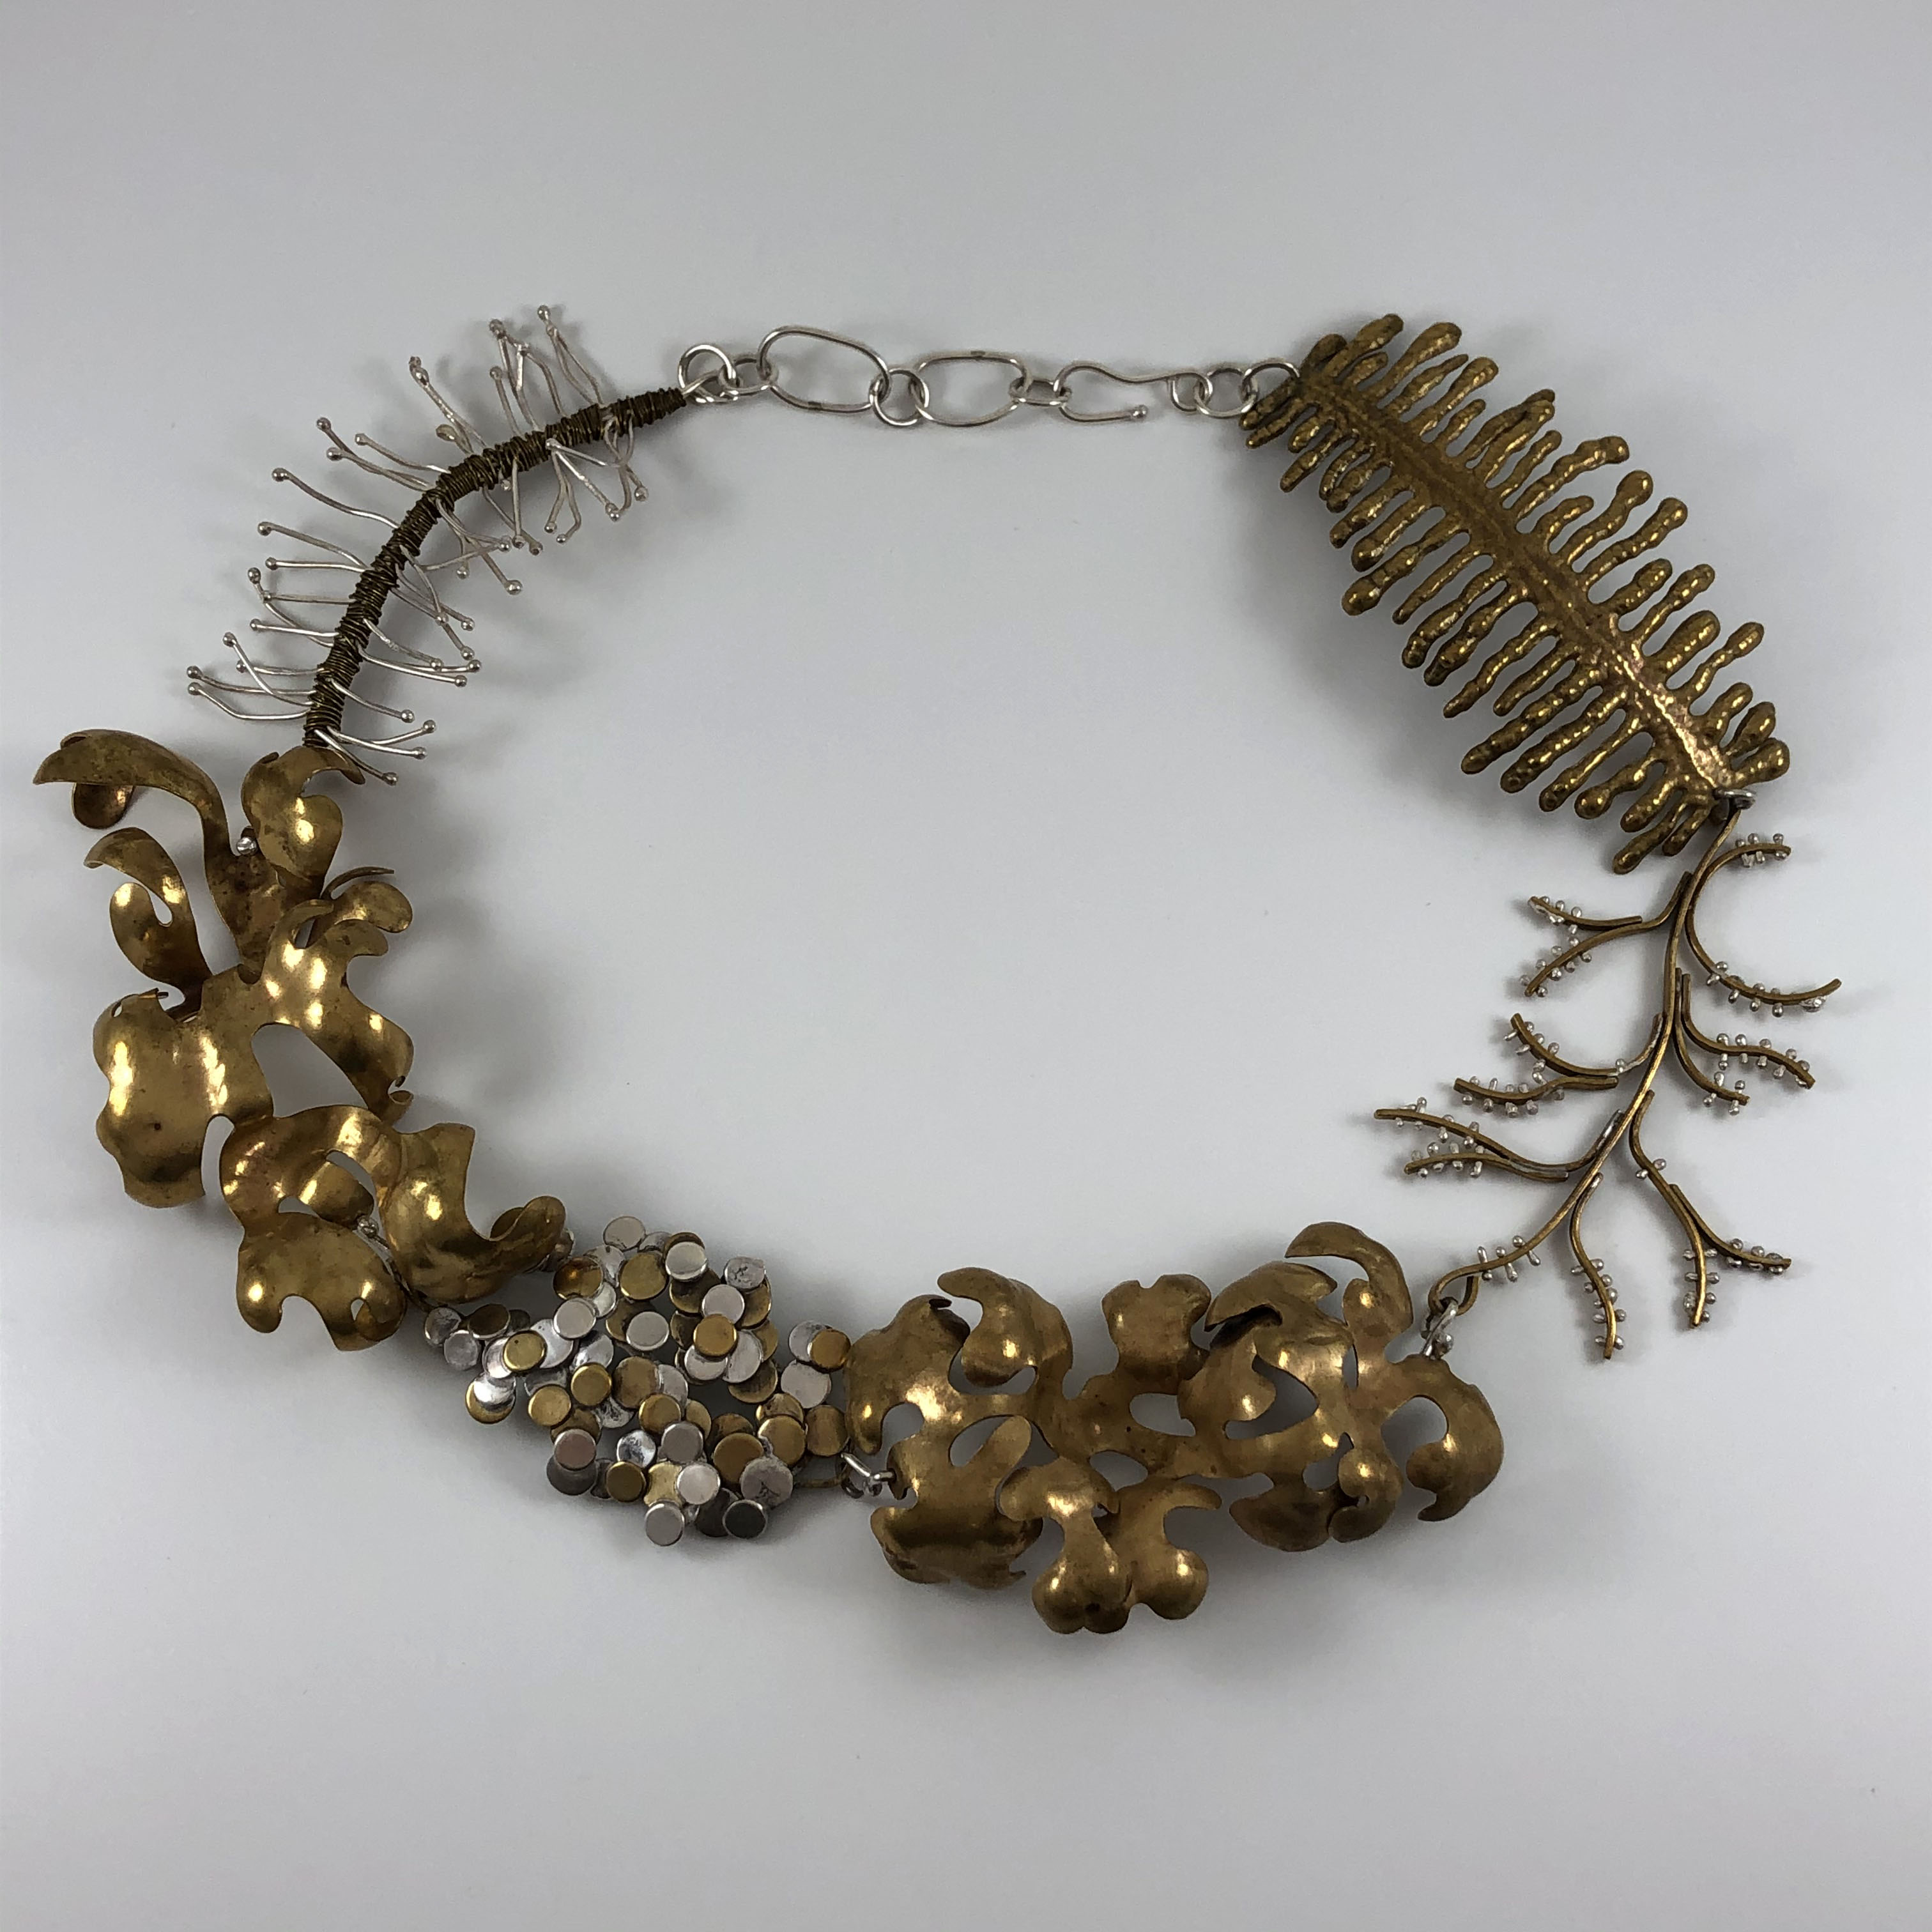 seaweed necklace image